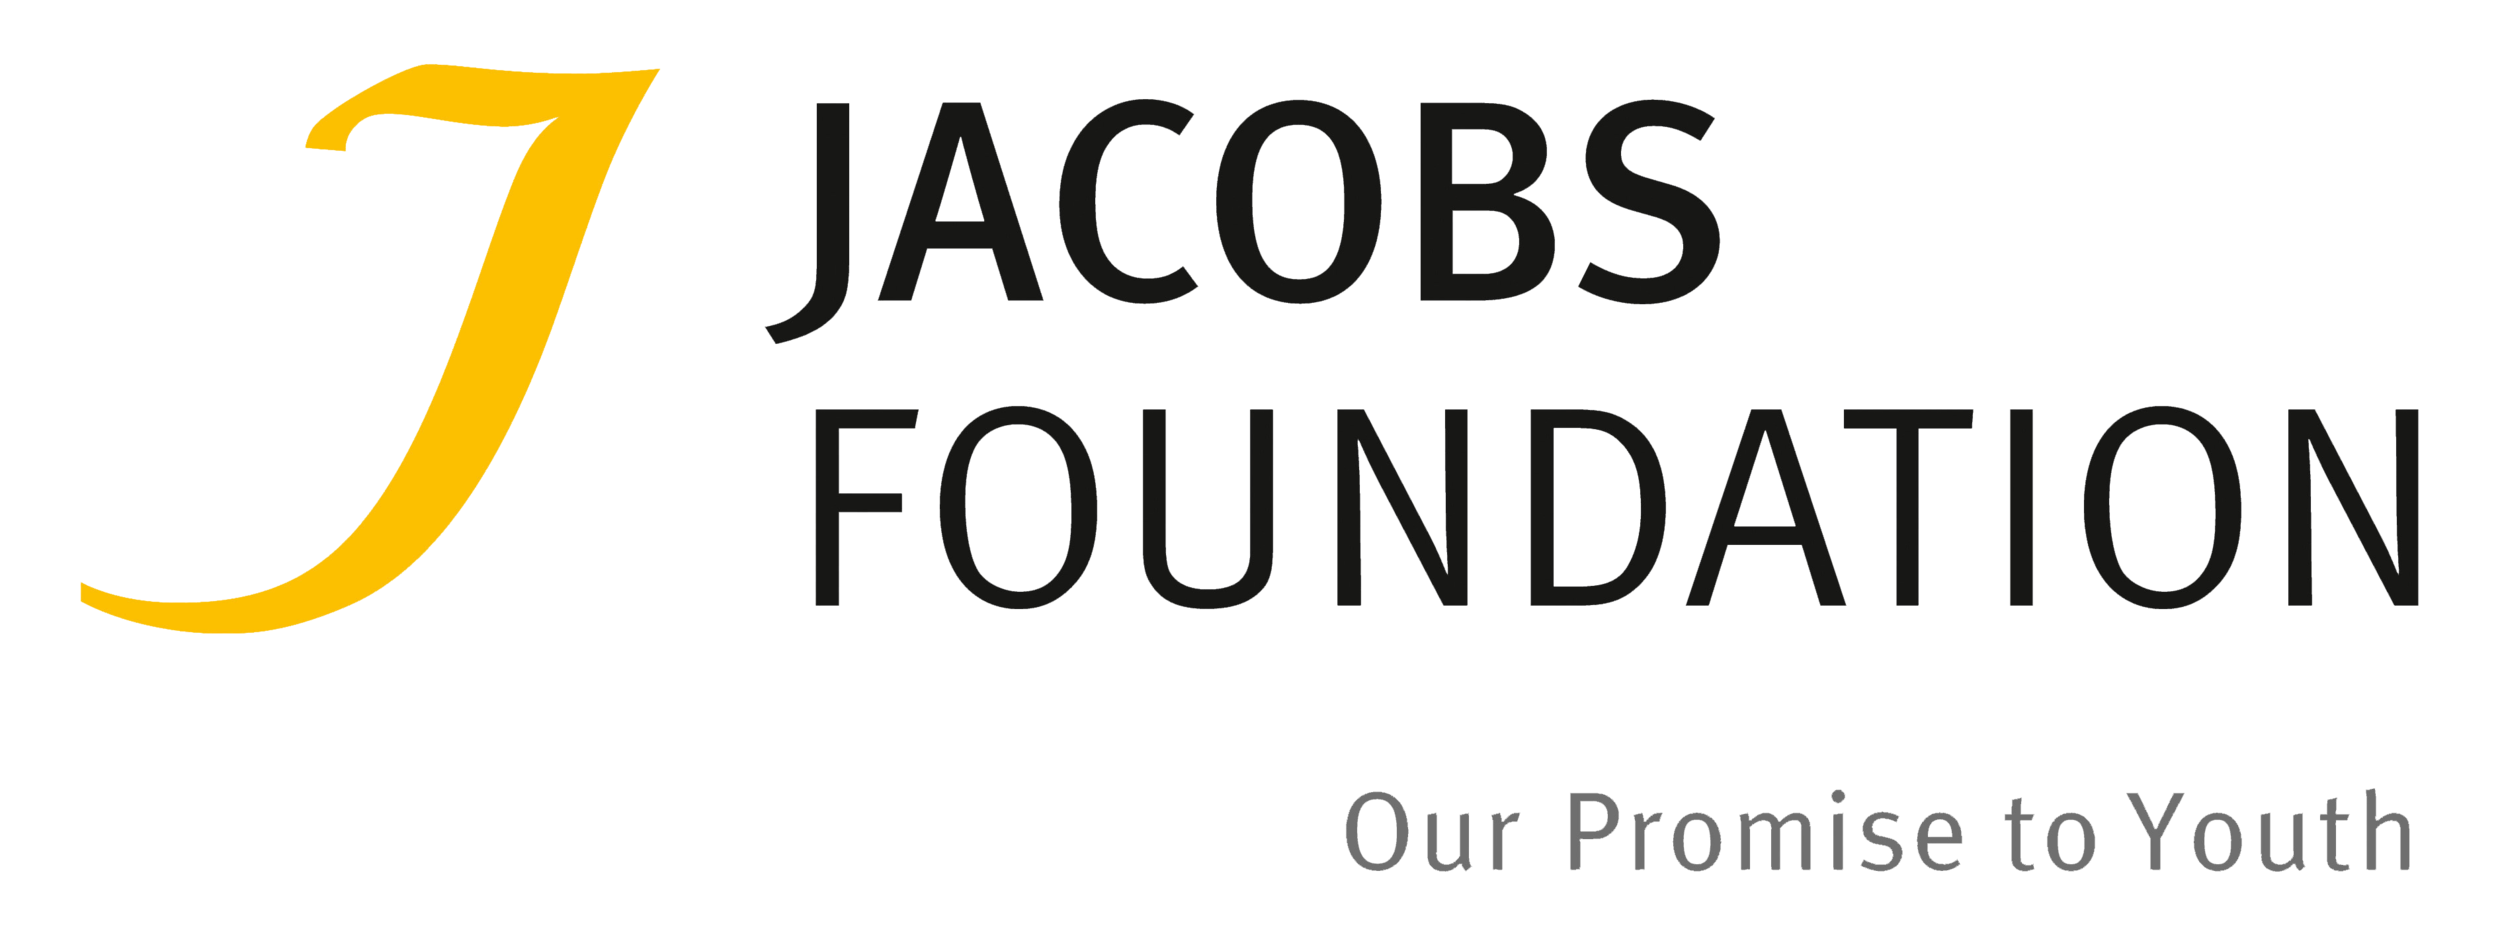 Jacobs foundation.png